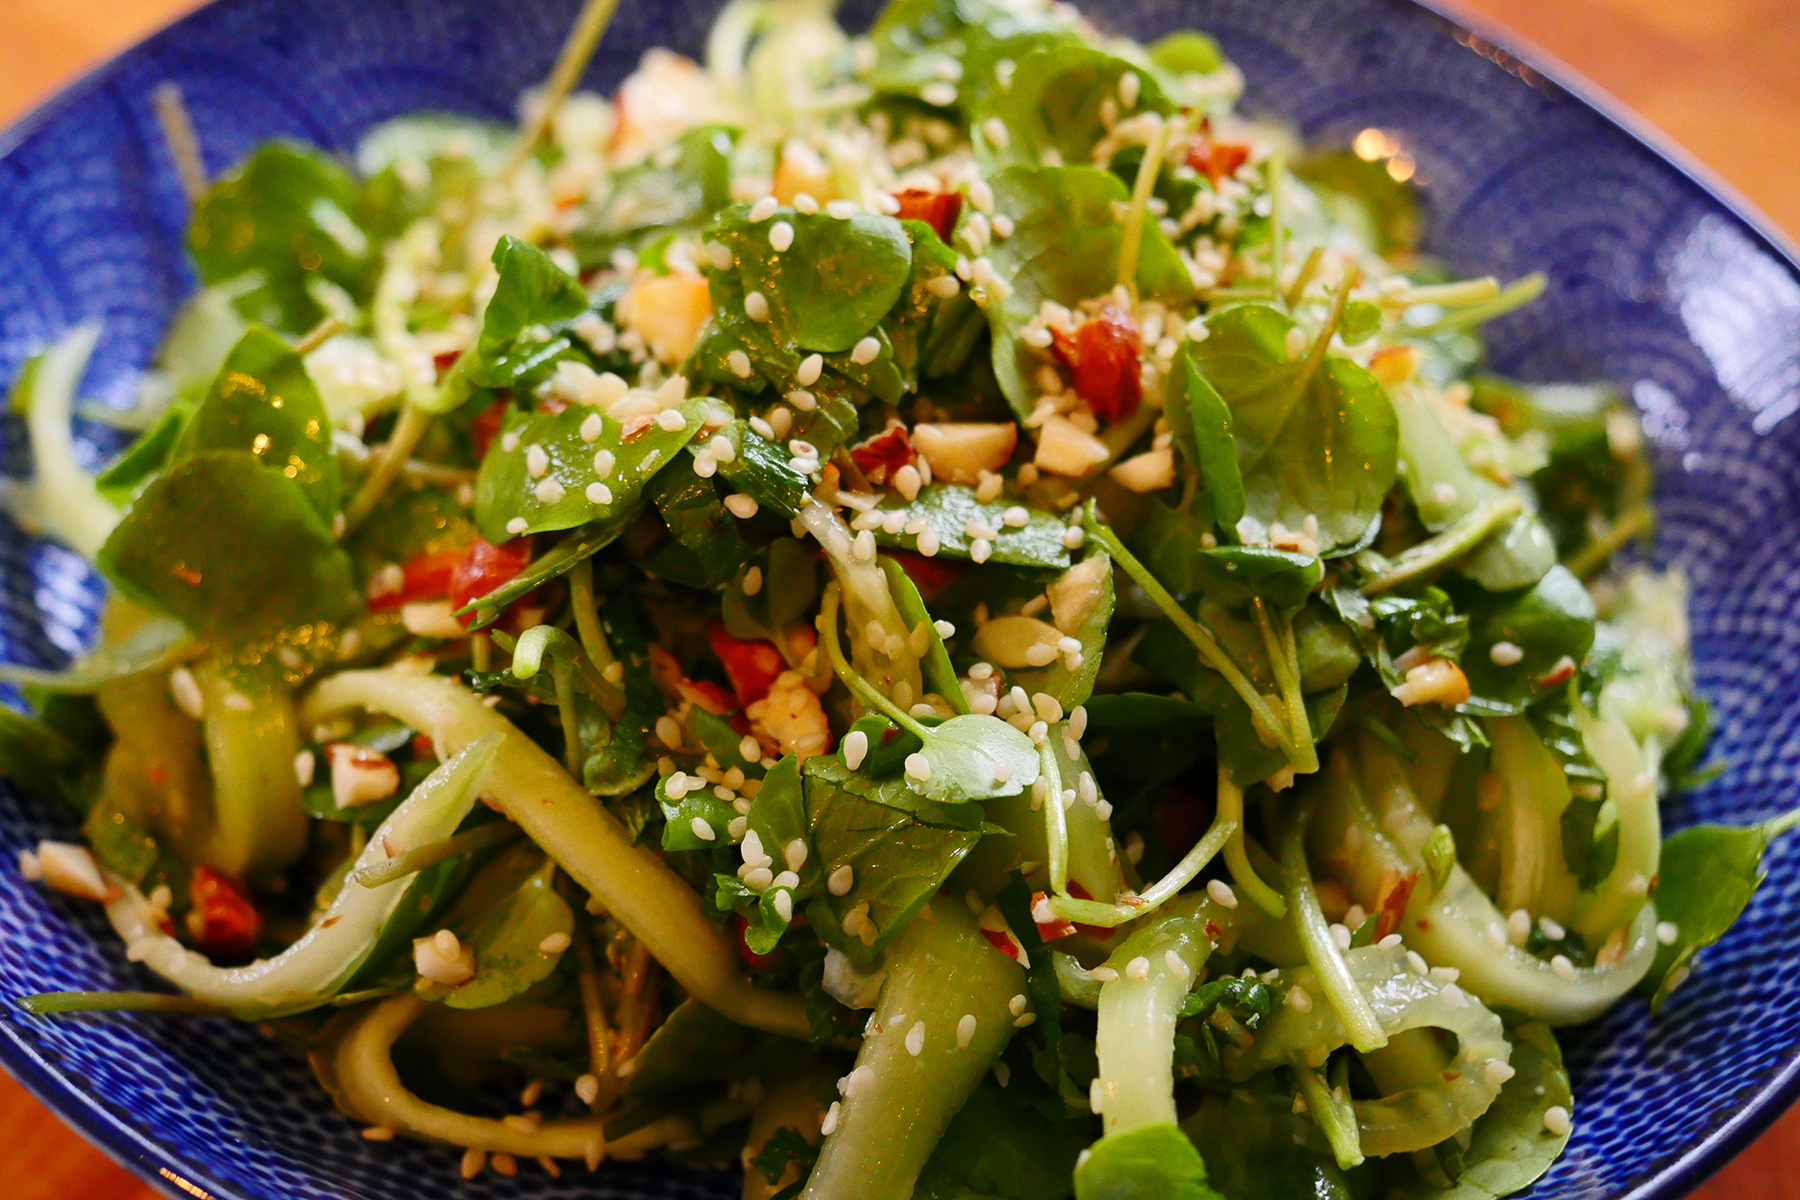 All my taste-testers here at the Co-op agreed that this was a delicious way to prepare watercress. The cucumber and mint lend a coolness to the spicy greens and the toasted sesame oil adds an underlying warmth that balances the whole dish. I hope you try making this simple & delicious salad! If you do, drop me a line at  social@berkshire.coop  and let me know what you think of it!